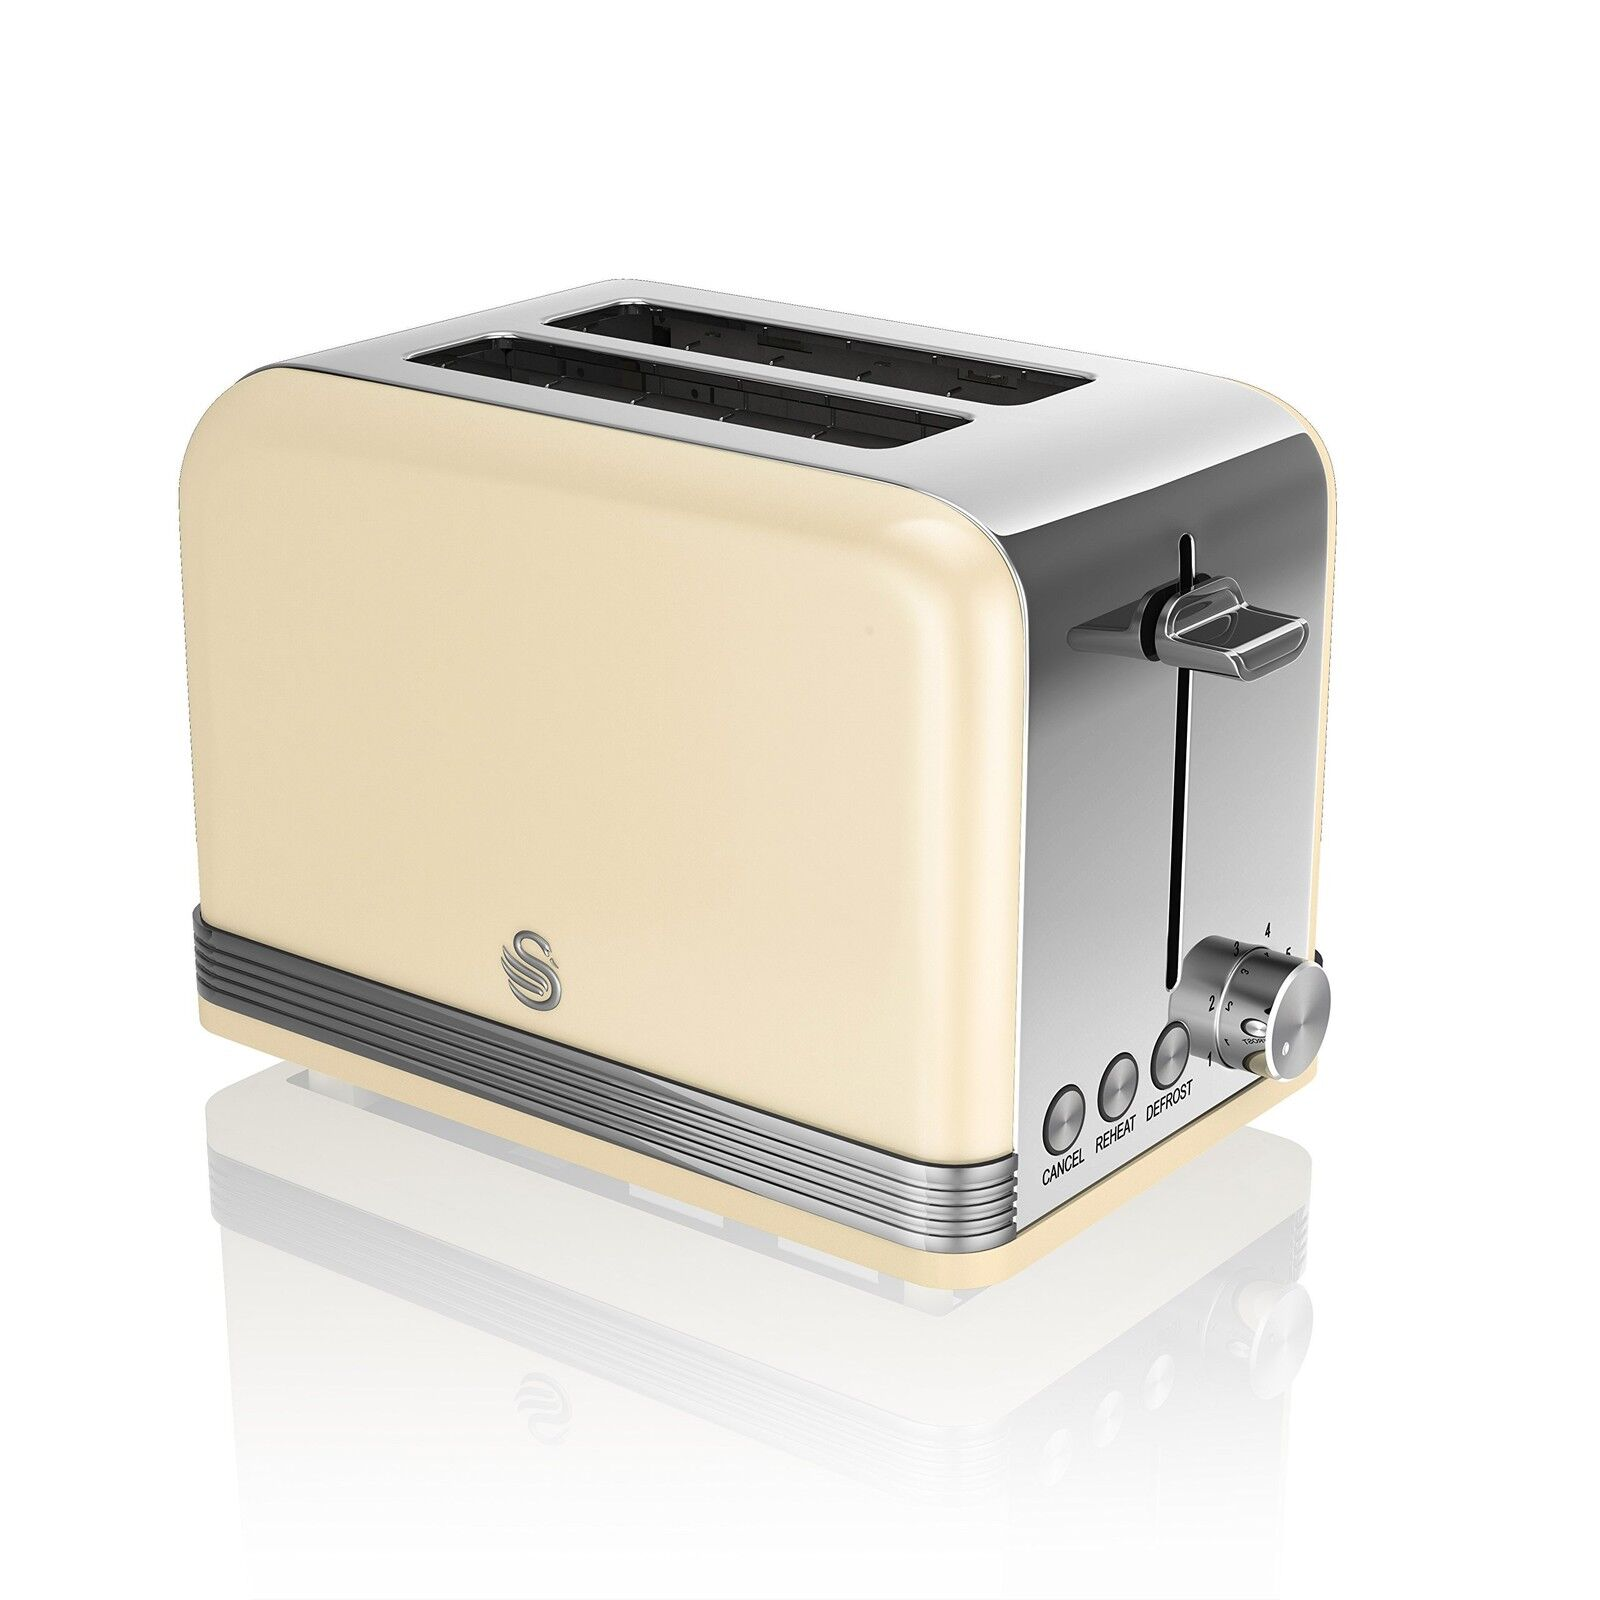 Swan Brand 2-Slice Retro Toaster 815 W Cream NEW